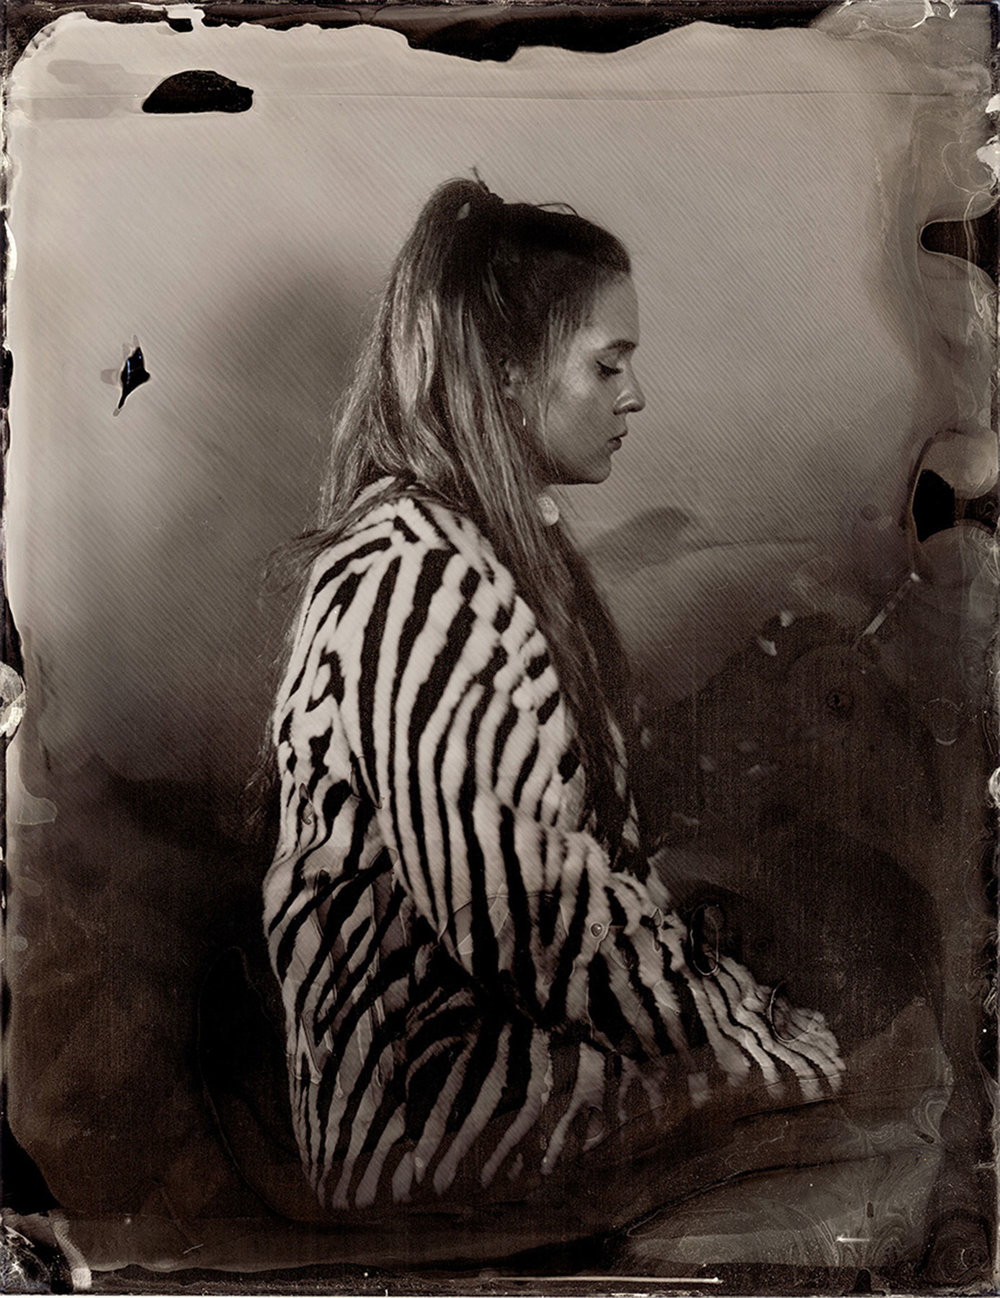 Cara on her phone, tintype // © Iseult Timmermans